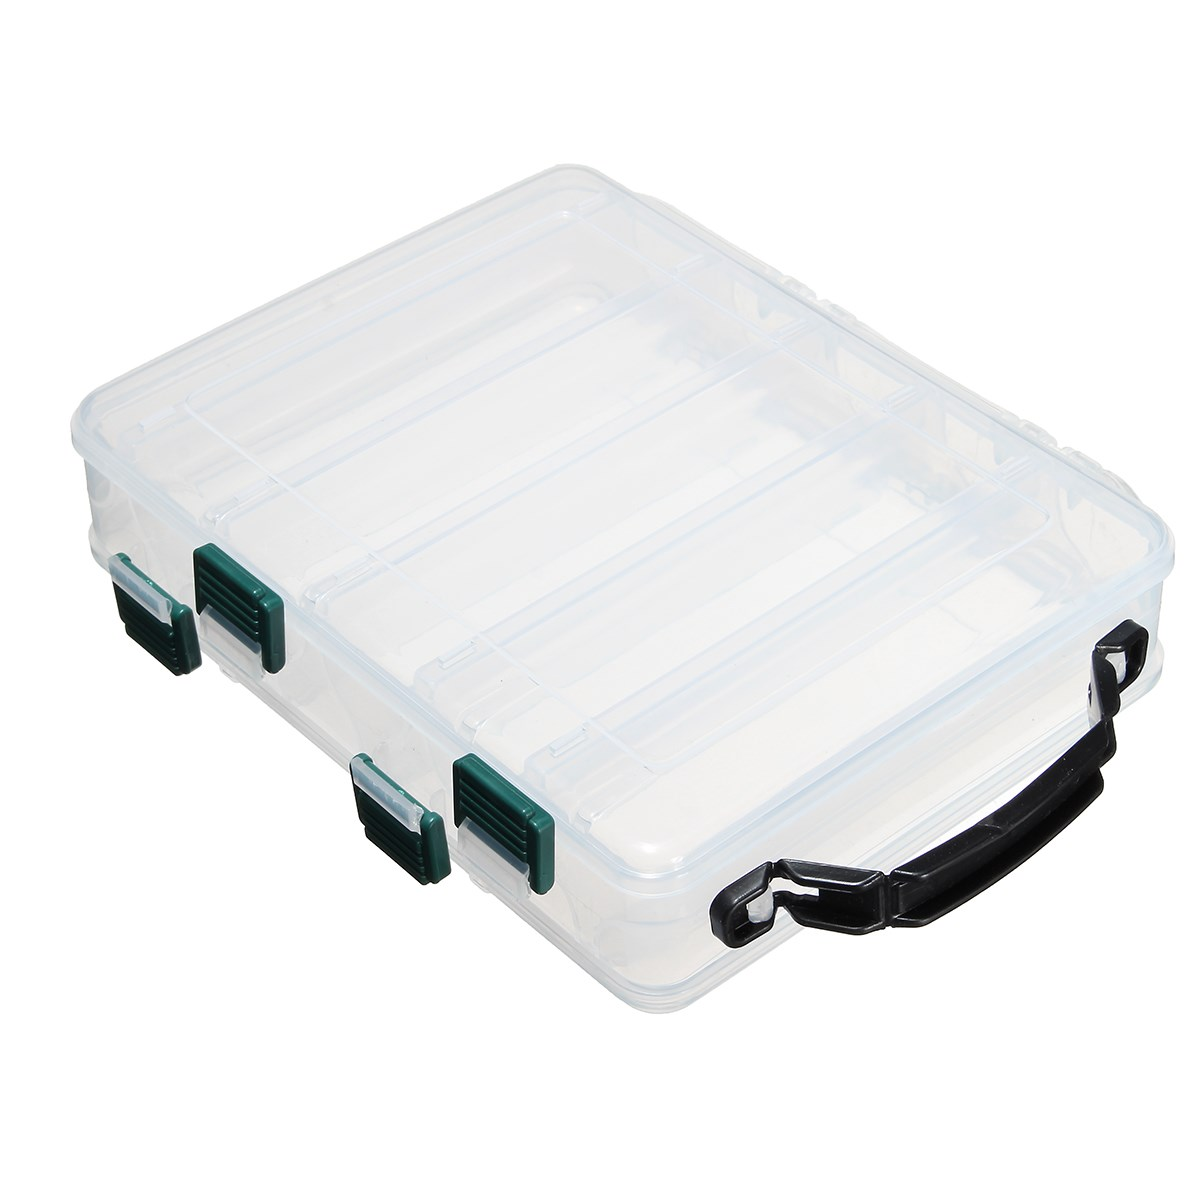 Fishing Accessories Double Sided Fishing Lure Bait Box Hooks Tackle Waterproof Storage Case Plastic Box Organizer Container(China (Mainland))